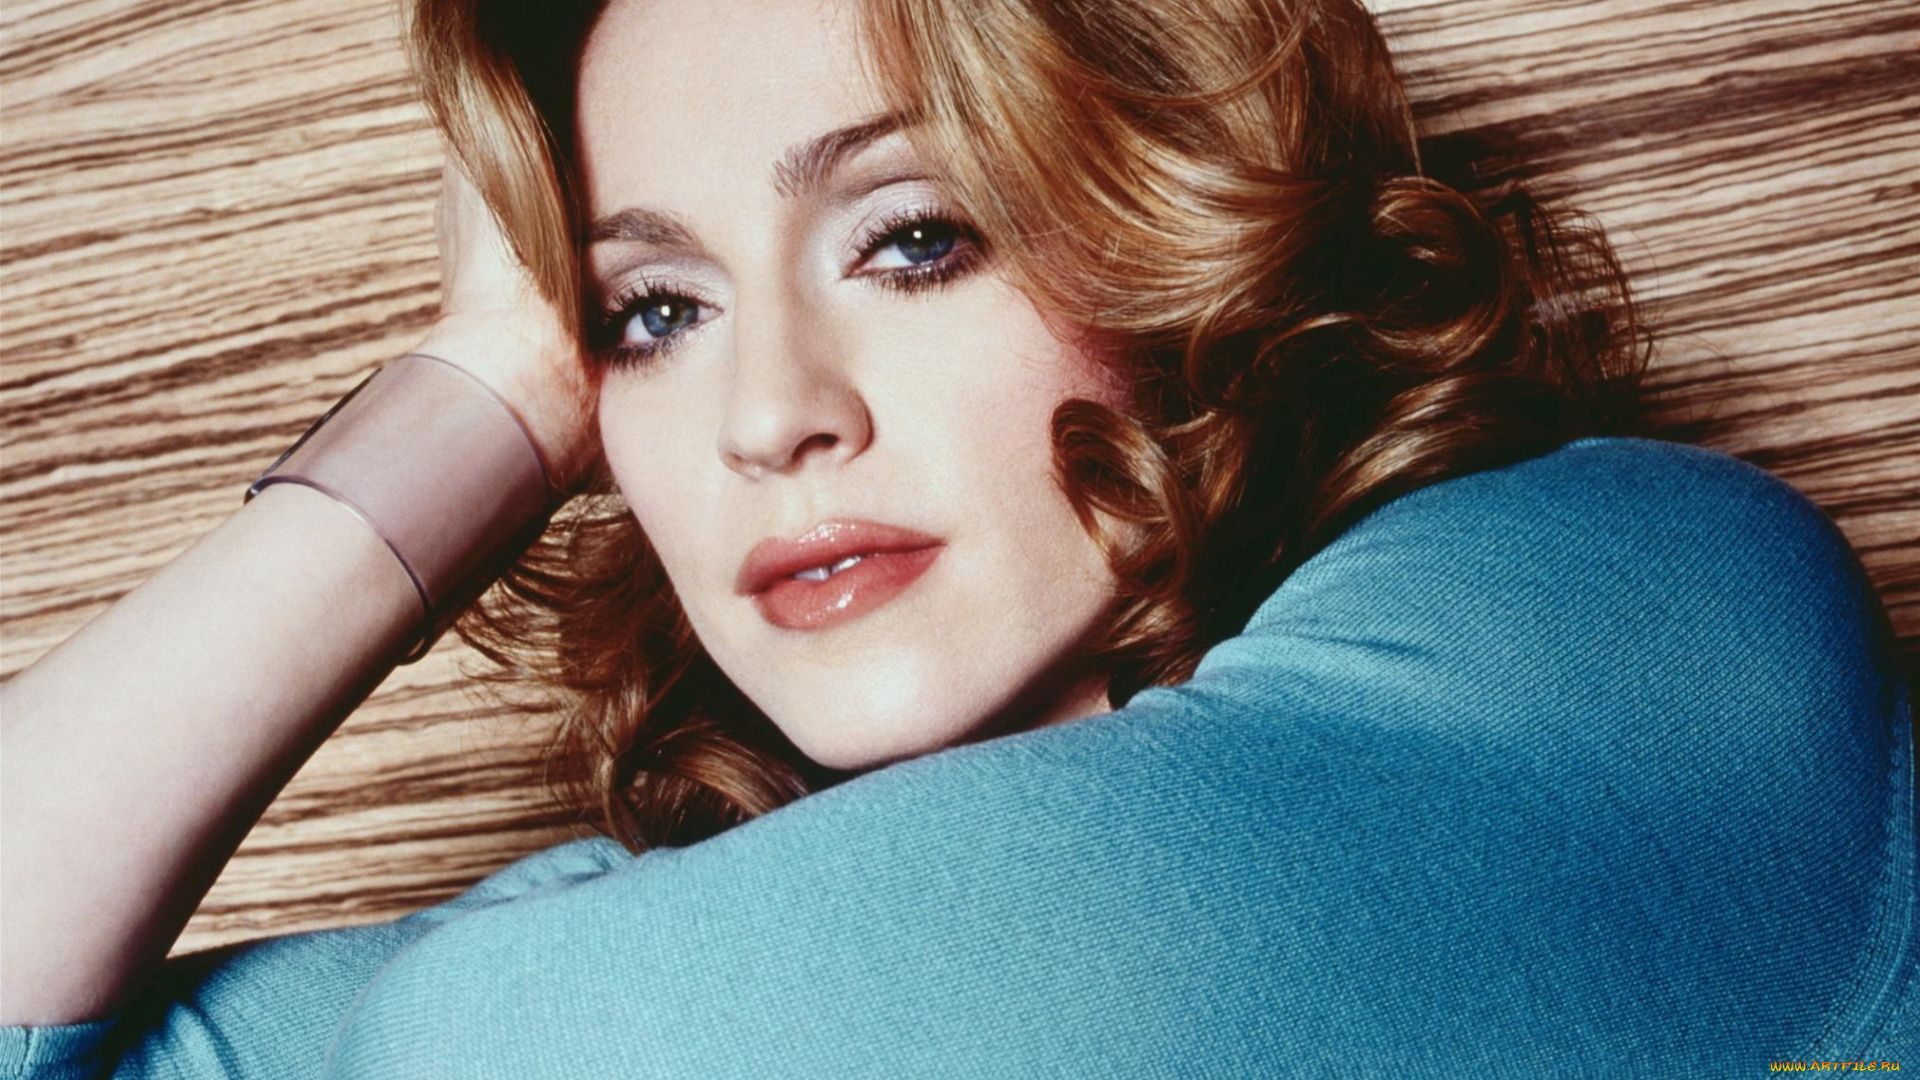 Madonna Wallpapers Wallpapers All Superior Madonna Wallpapers Backgrounds Wallpapersplanet Net